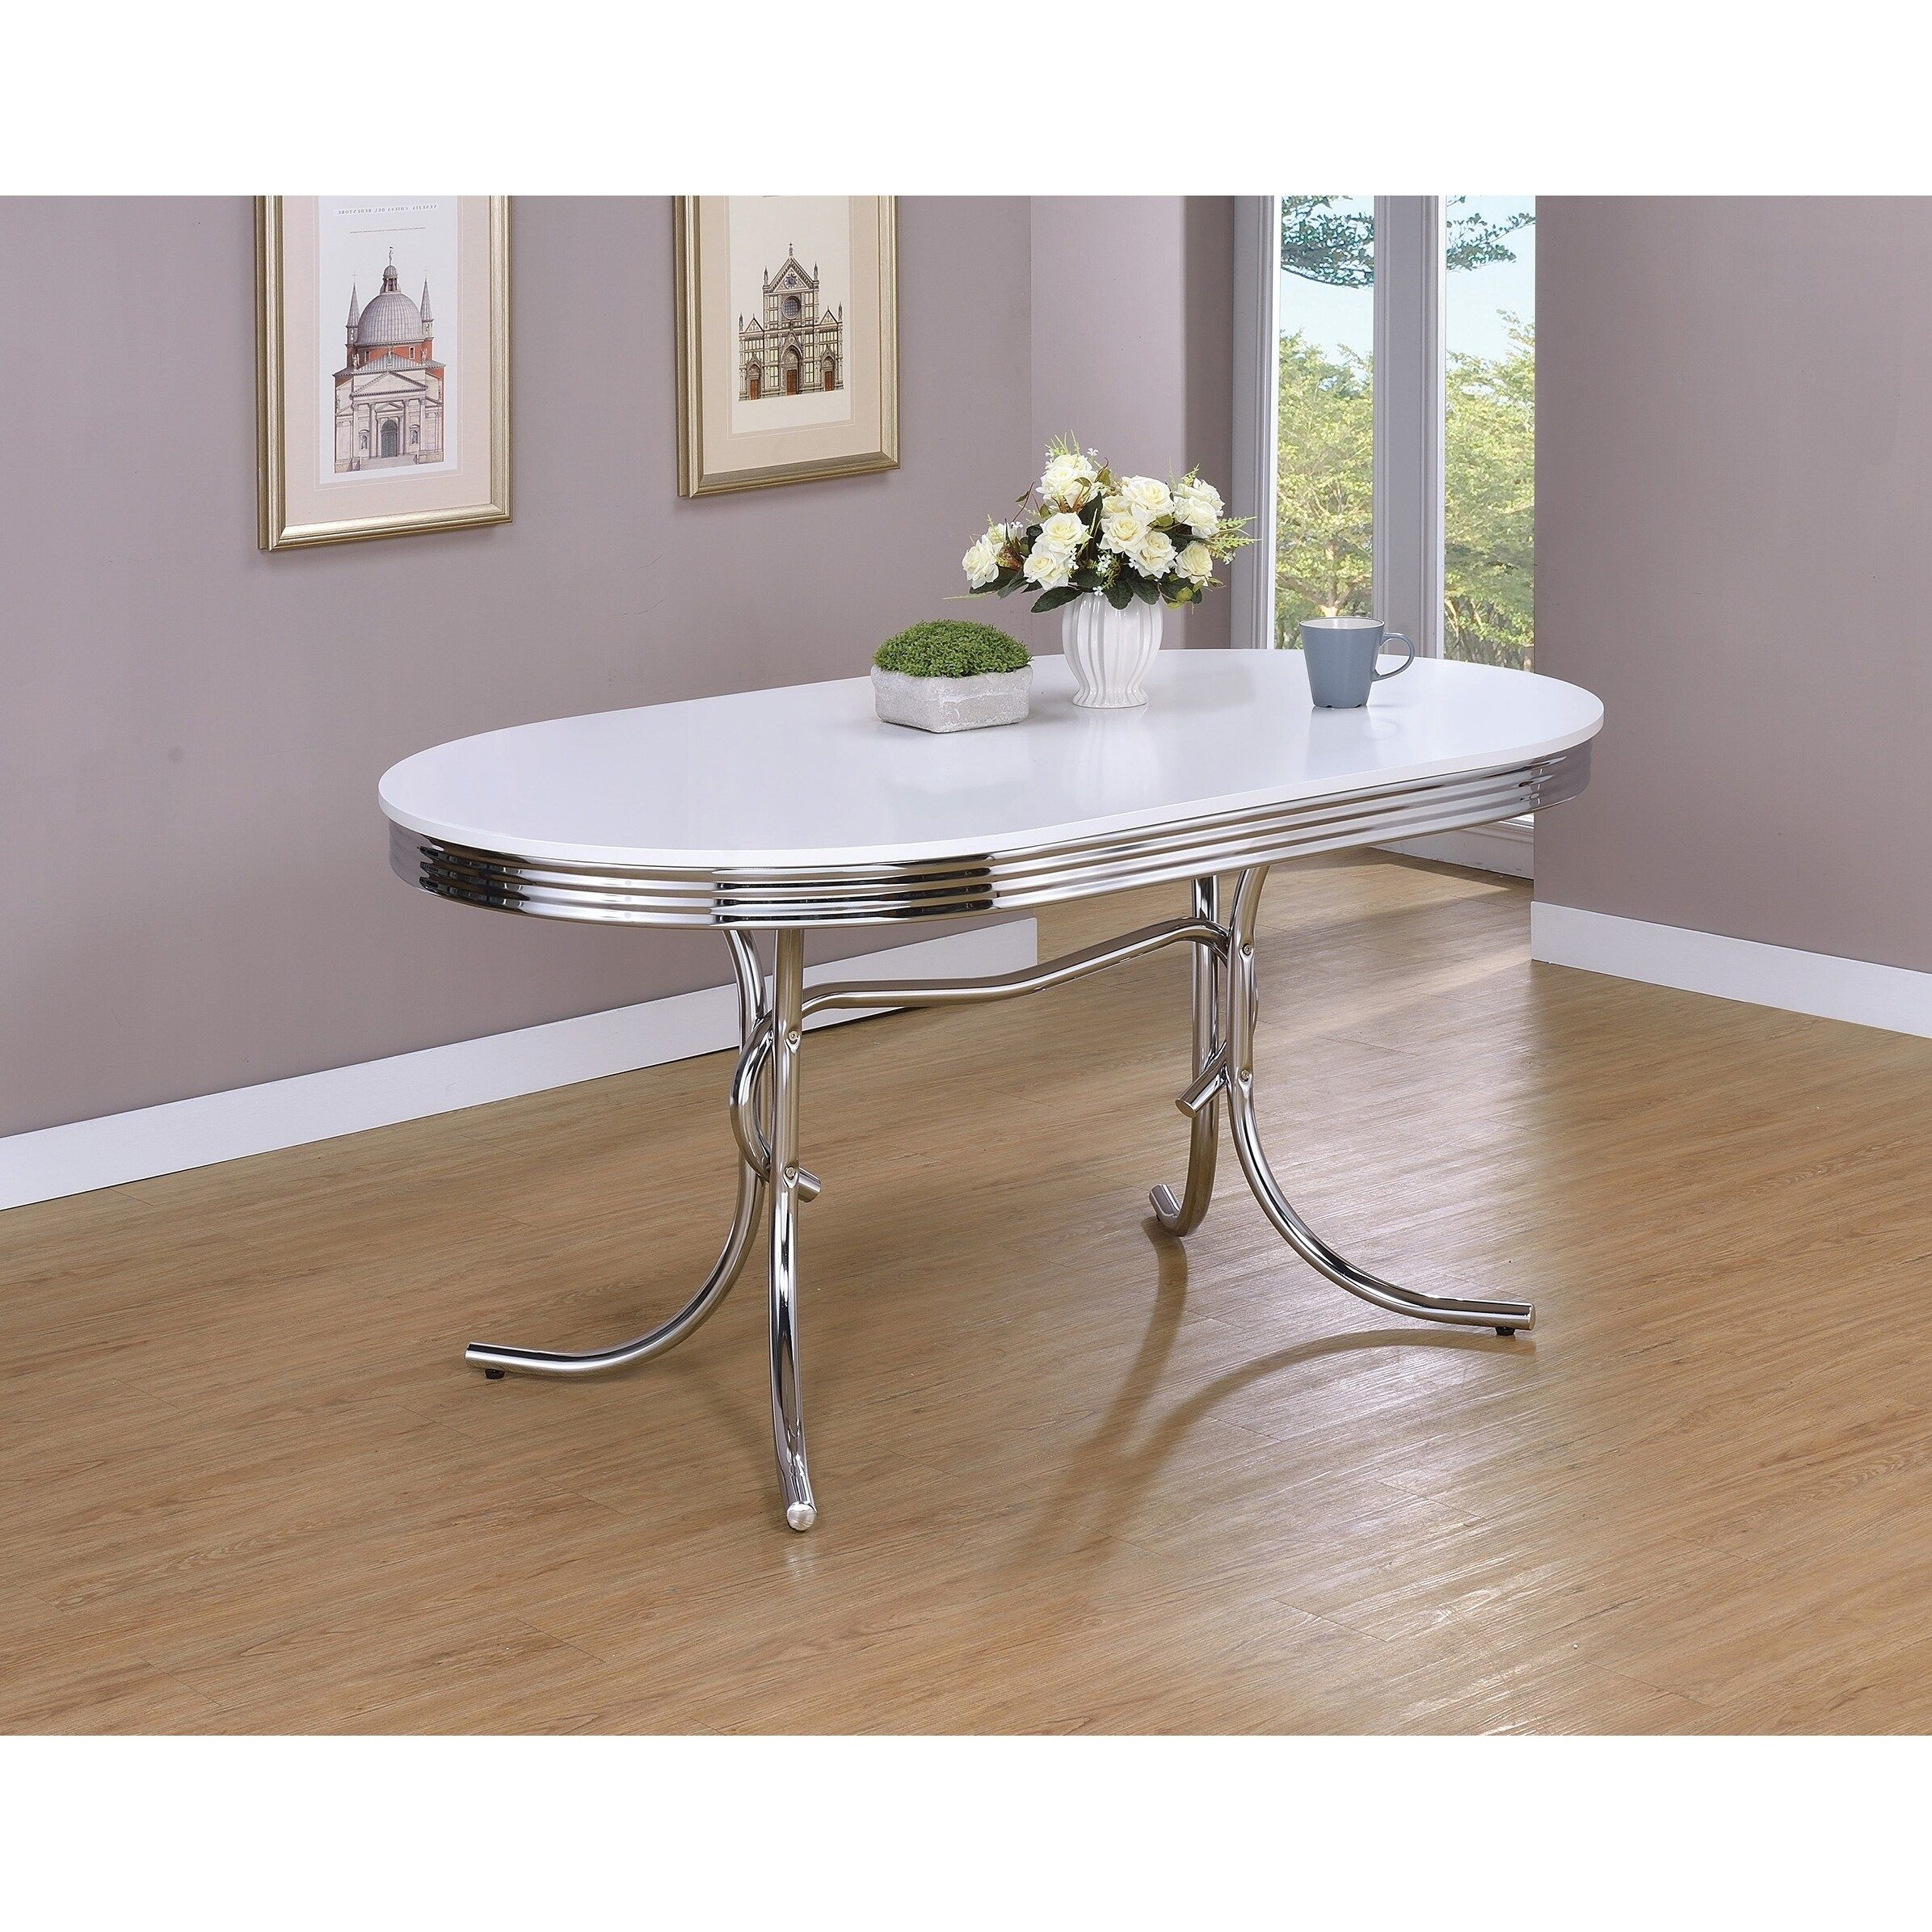 Parlisse White And Chrome Oval Dining Table Grey Dining Table